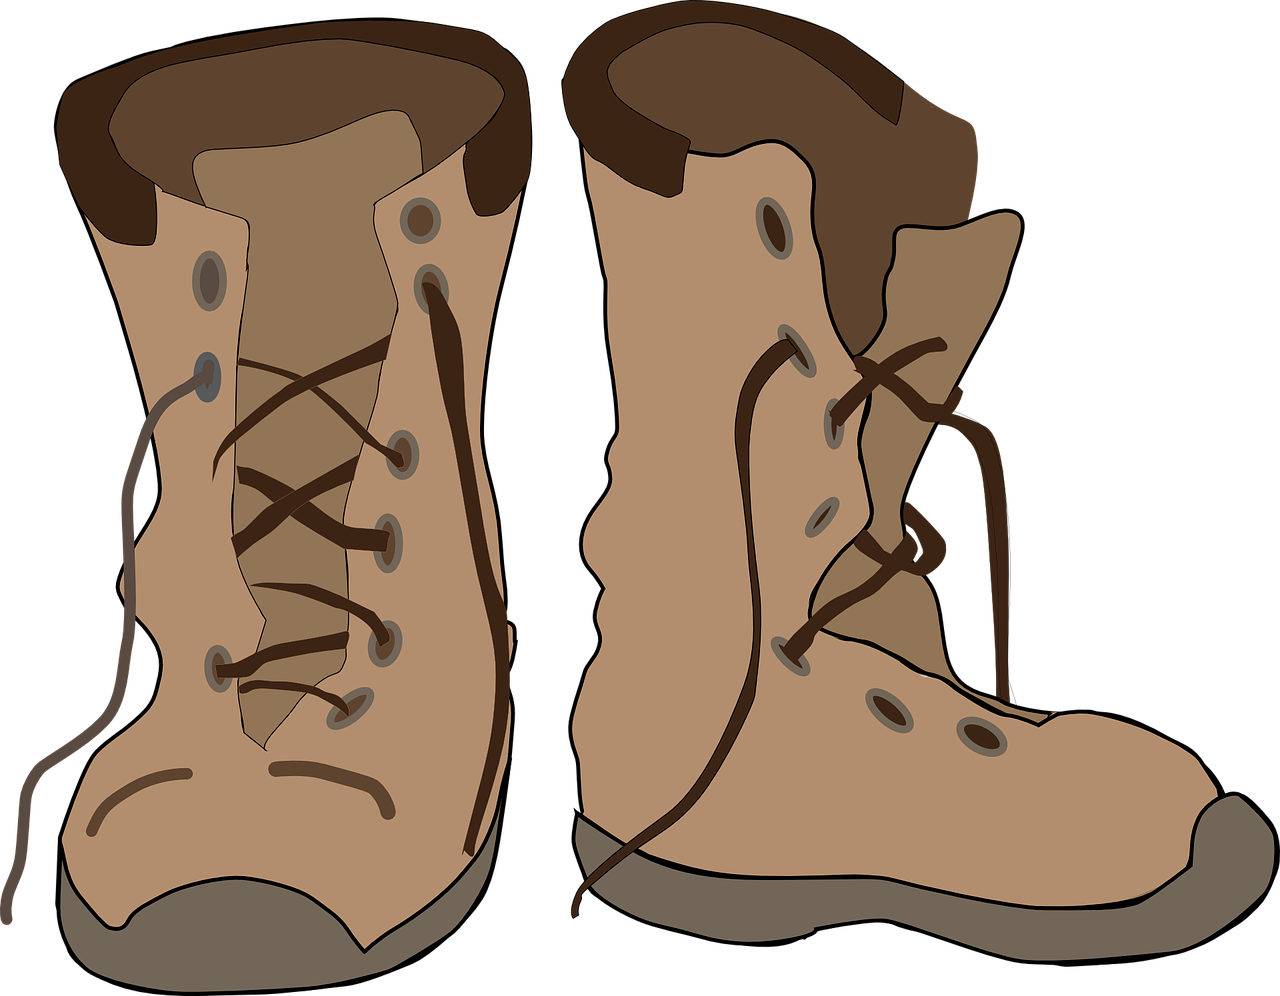 Leather boots clipart